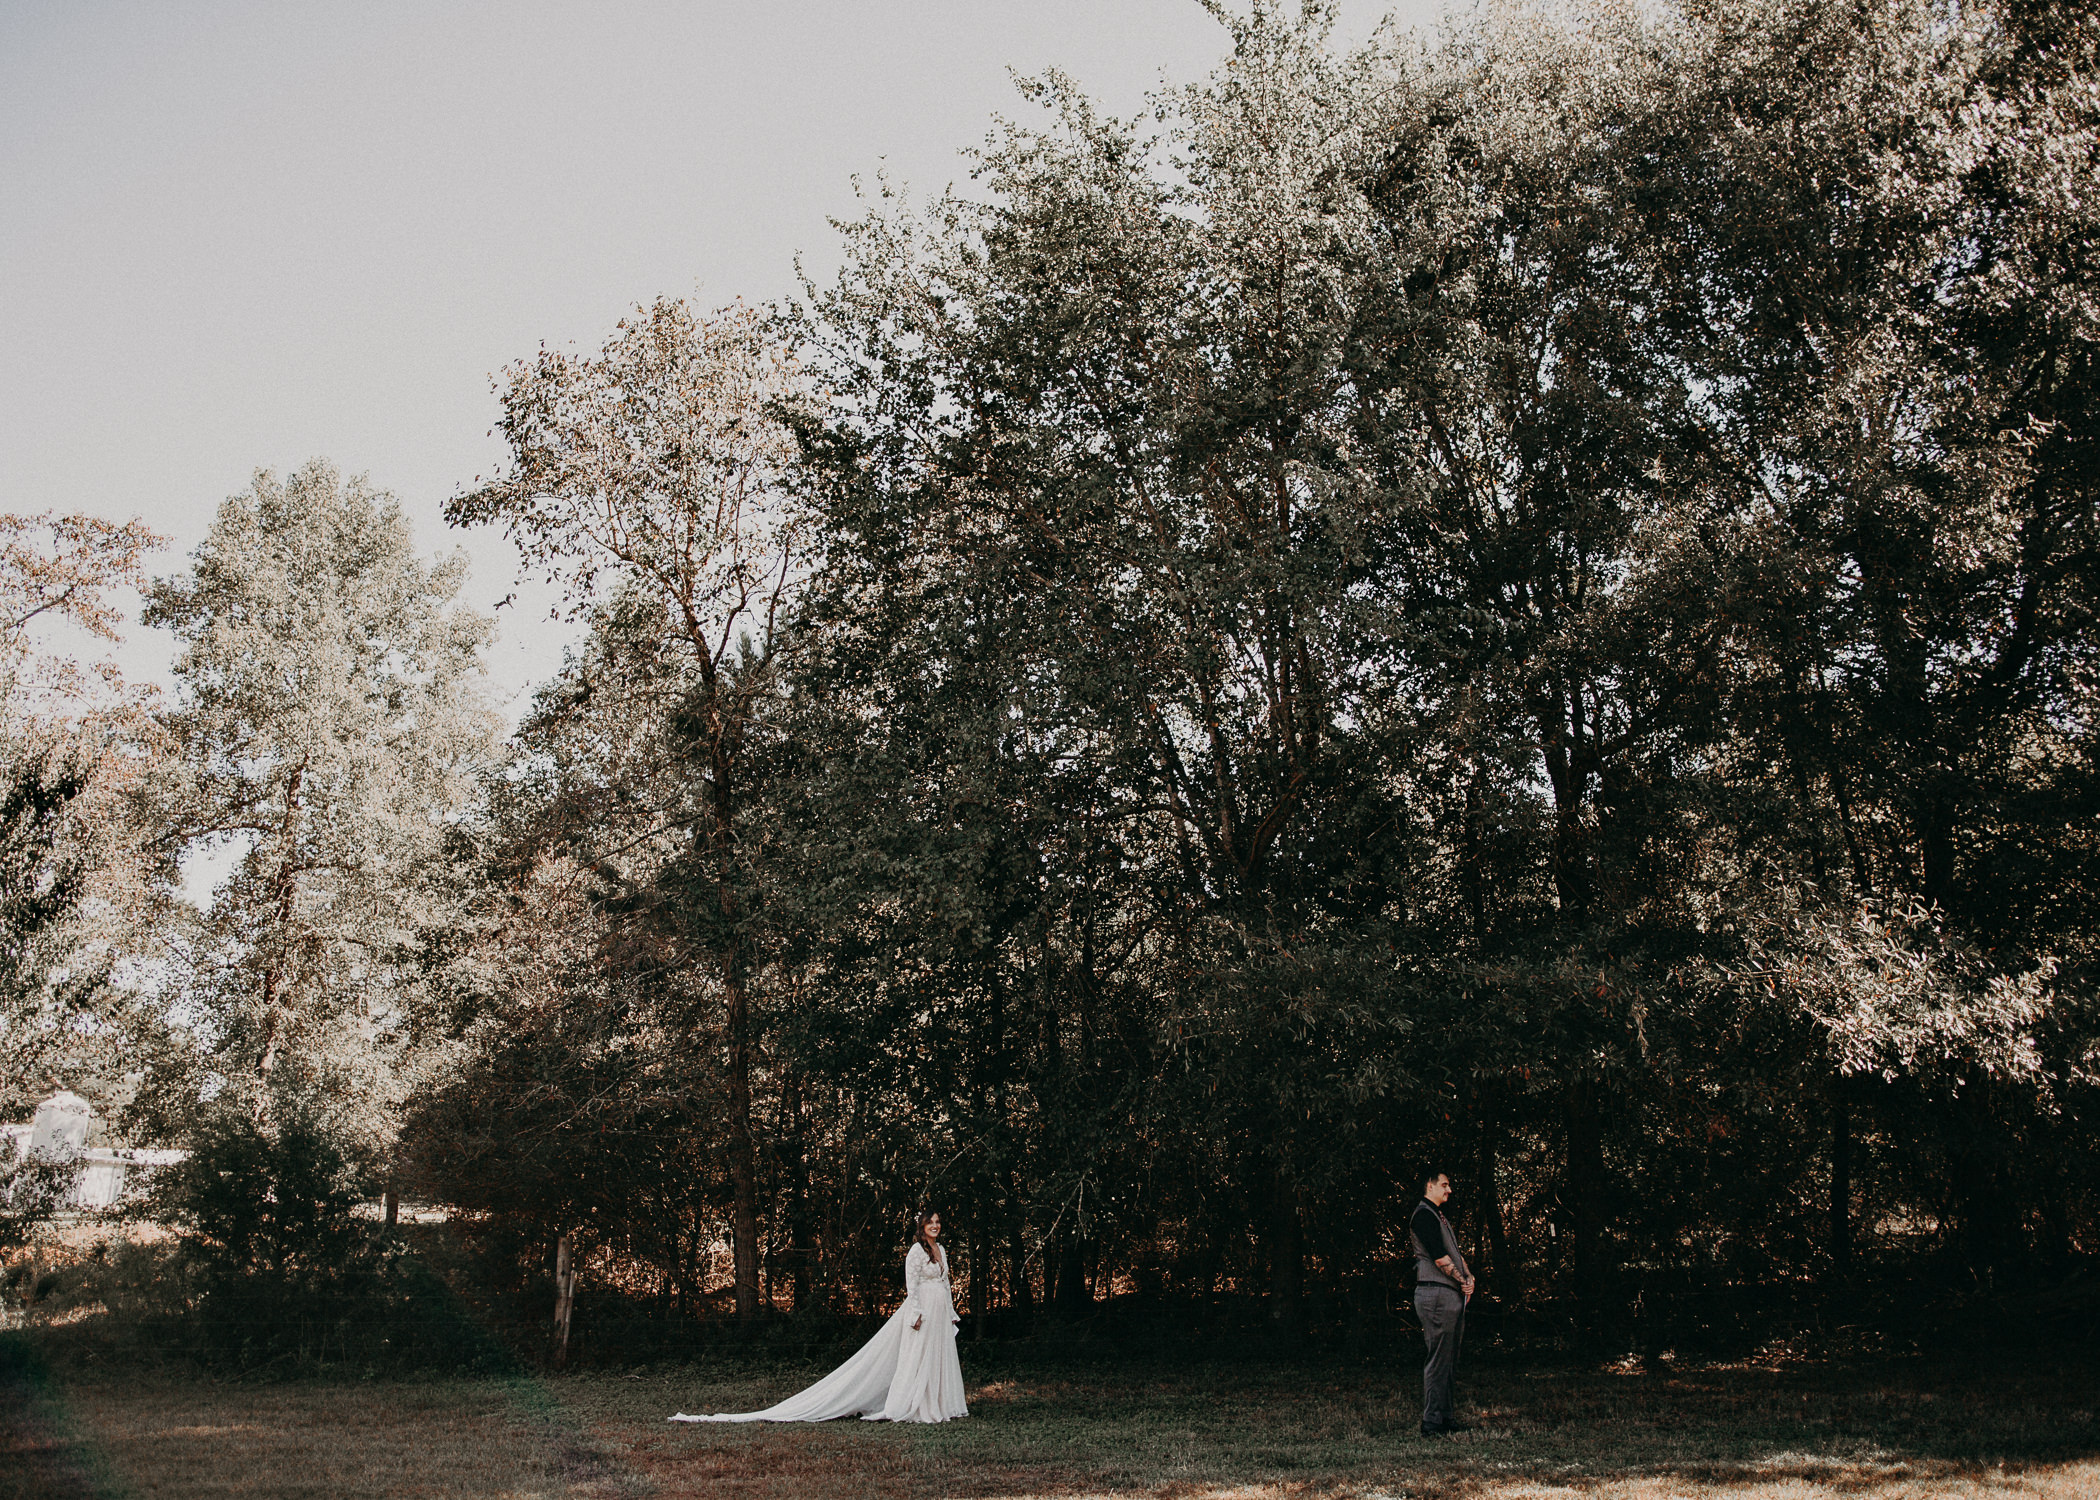 37 - Wedding first look : Atlanta wedding photographer .jpg